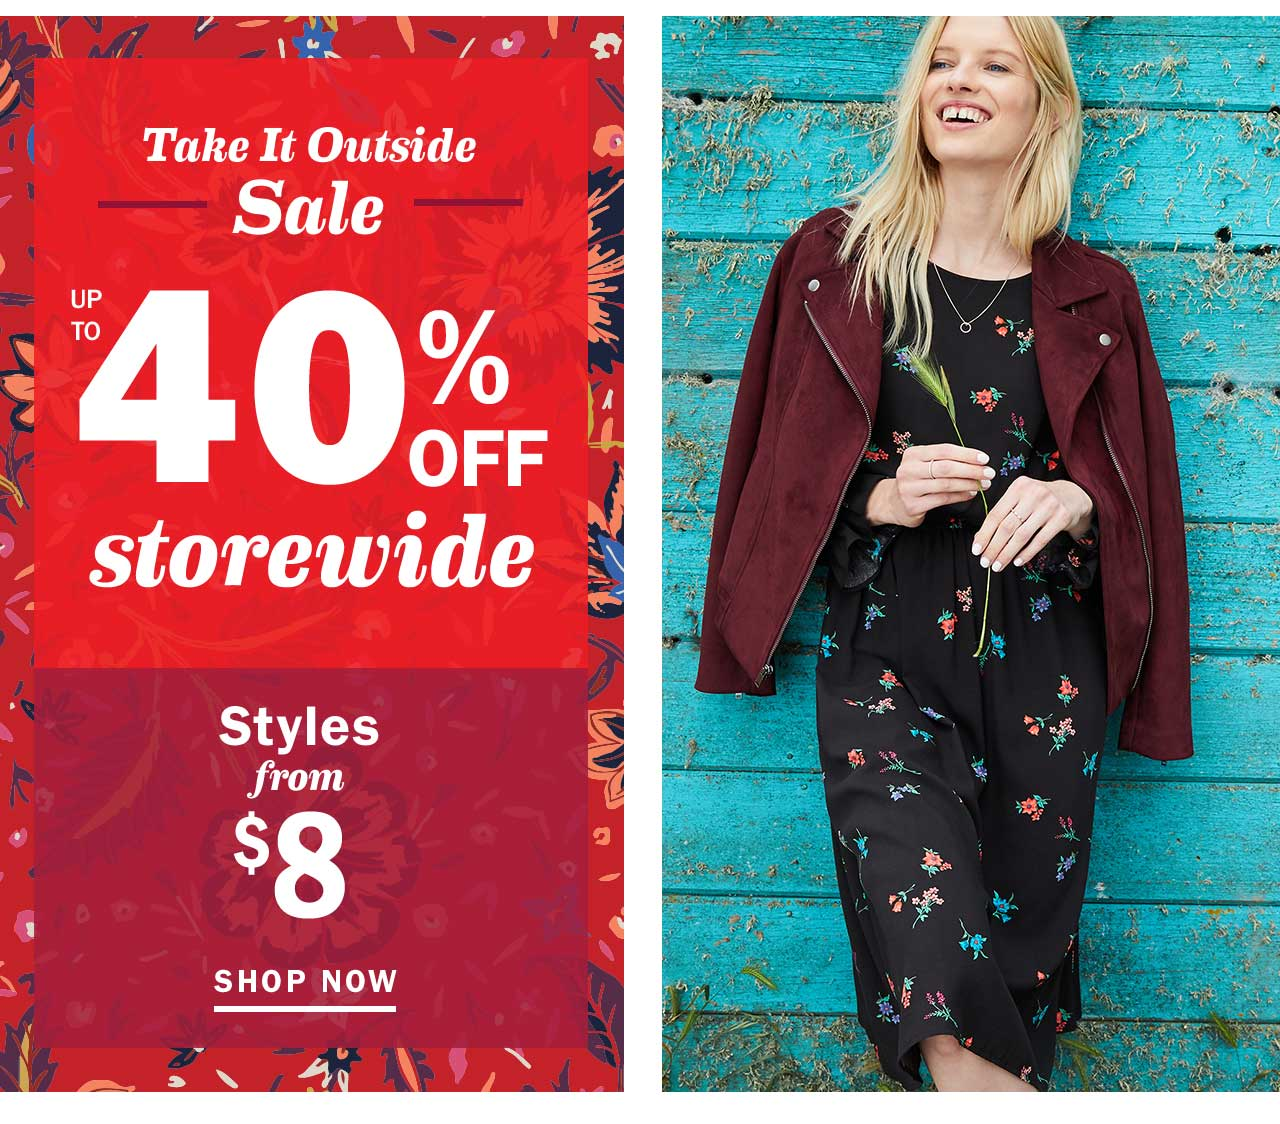 UP TO 40% OFF storewide | Styles from $8 | SHOP NOW